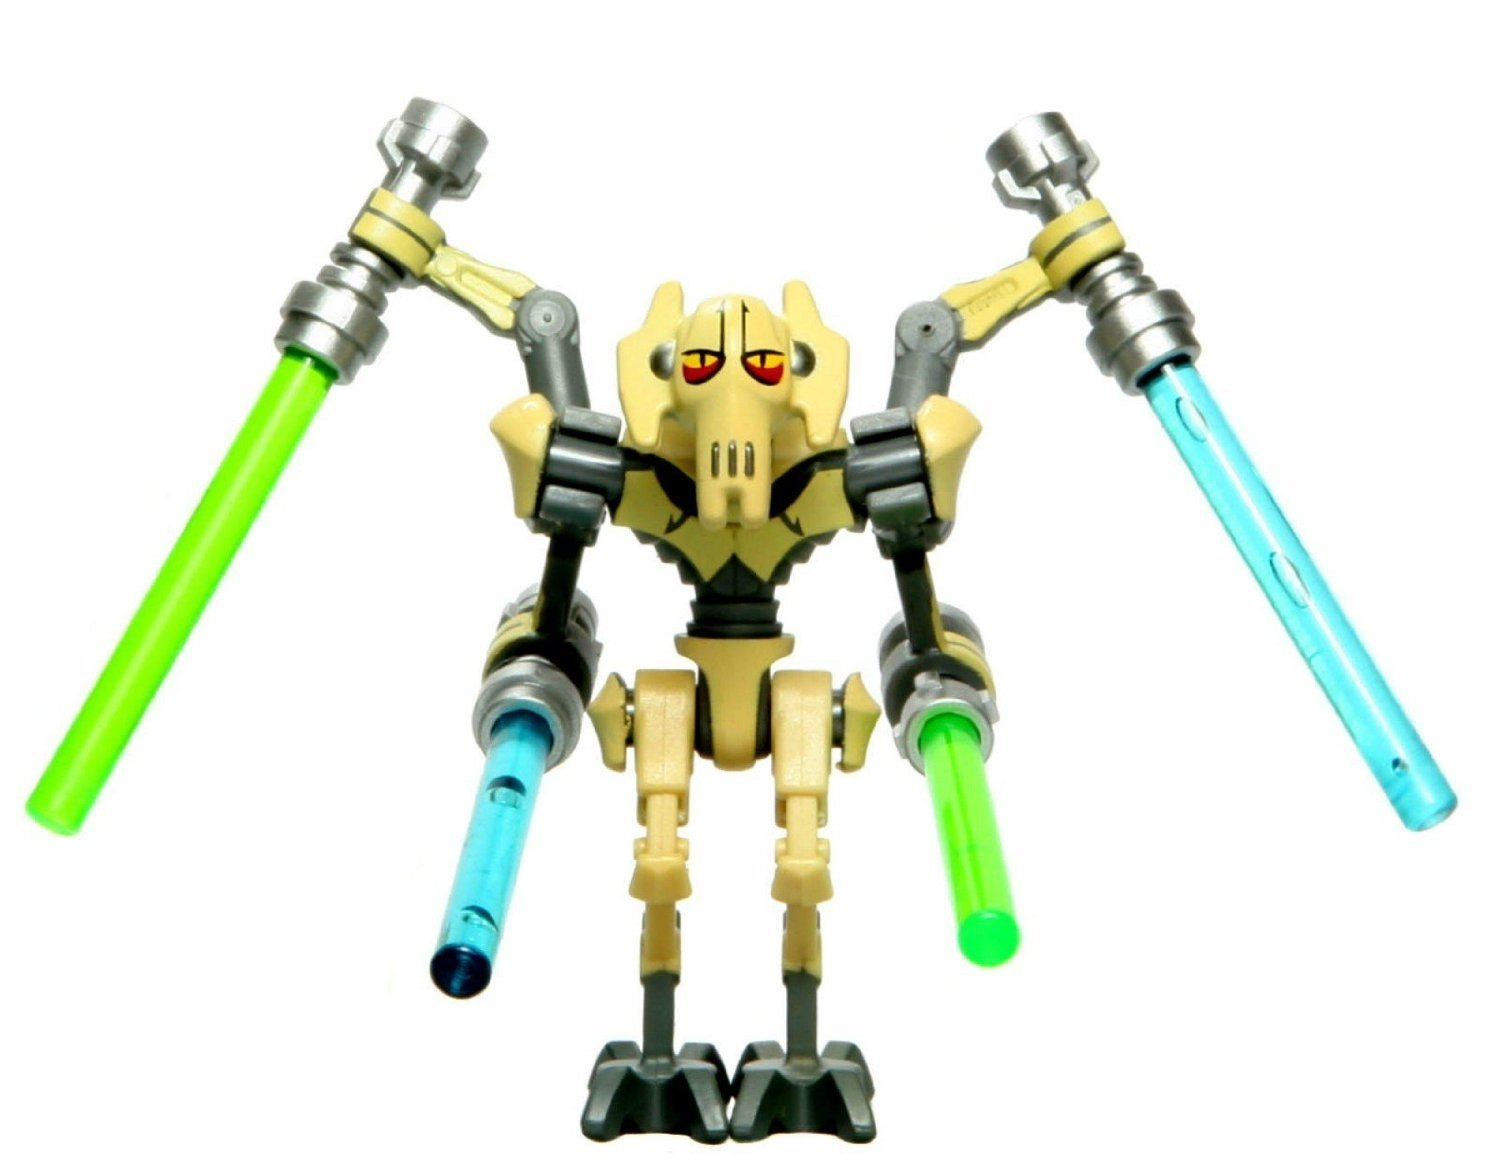 Uncategorized Pictures Of General Grievous amazon com lego star wars minifigure general grievous clone version tan 2010 toys games